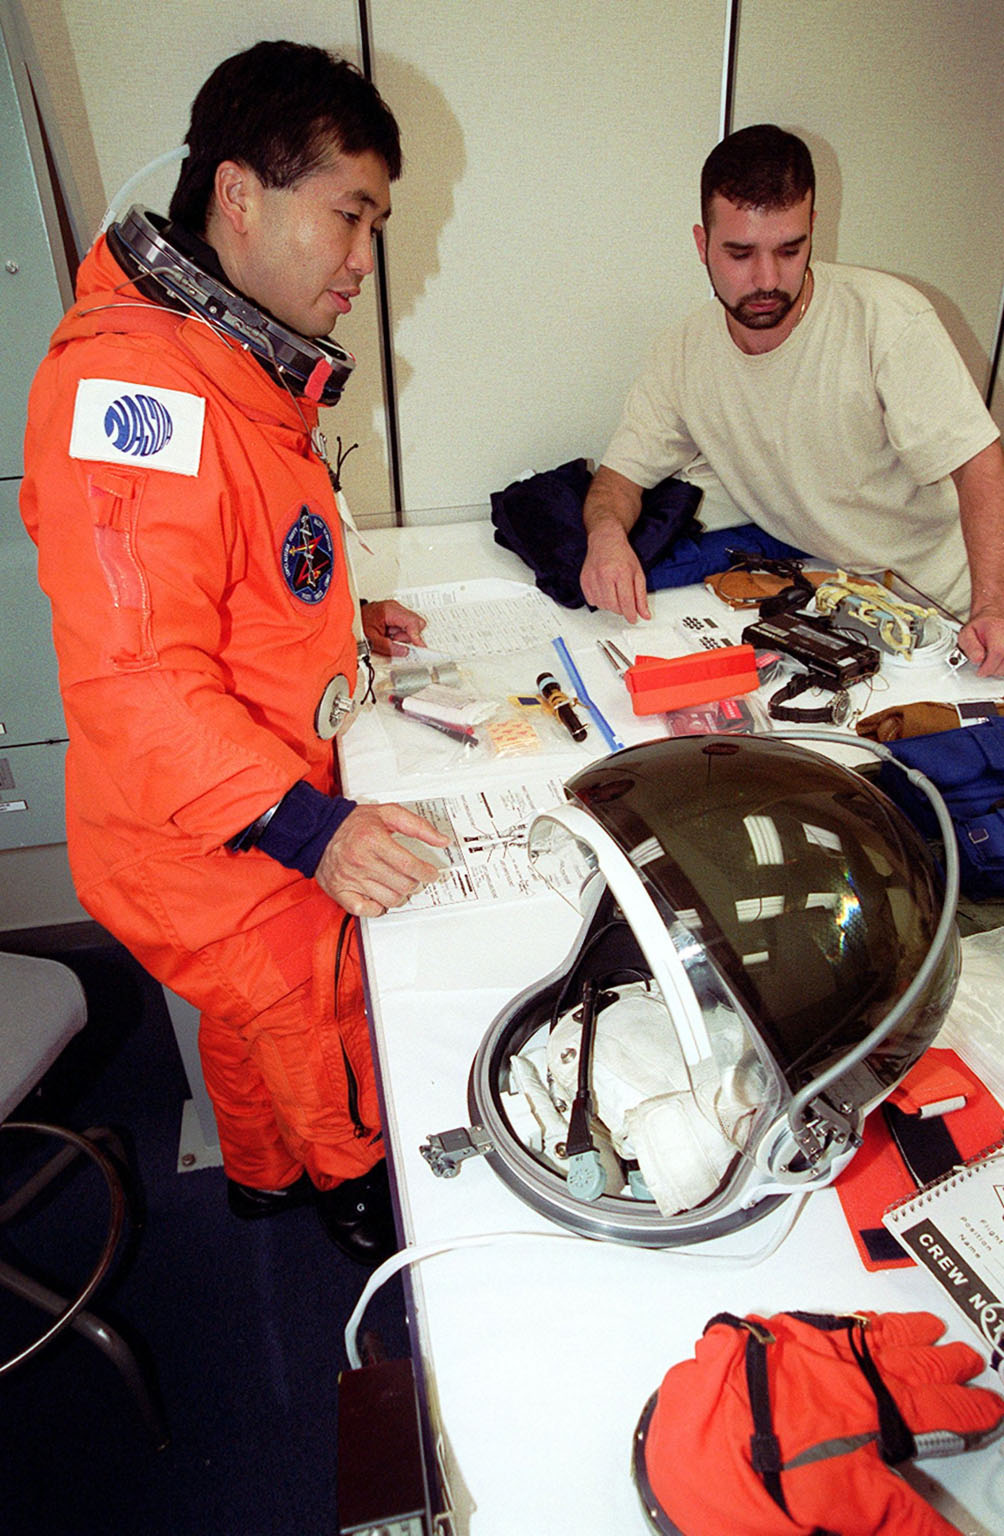 During pre-pack and fit check in the Operations and Checkout Building, STS-92 Mission Specialist Koichi Wakata of Japan looks over the equipment he will be wearing during launch and entry, such as the helmet and gloves on the table. Wakata and the rest of the crew are at KSC for Terminal Countdown Demonstration Test activities. The TCDT provides emergency egress training, simulated countdown exercises and opportunities to inspect the mission payload. This mission will be Wakata?s second Shuttle flight. STS-92 is scheduled to launch Oct. 5 at 9:38 p.m. EDT from Launch Pad 39A on the fifth flight to the International Space Station. It will carry two elements of the Space Station, the Integrated Truss Structure Z1 and the third Pressurized Mating Adapter. The mission is also the 100th flight in the Shuttle program